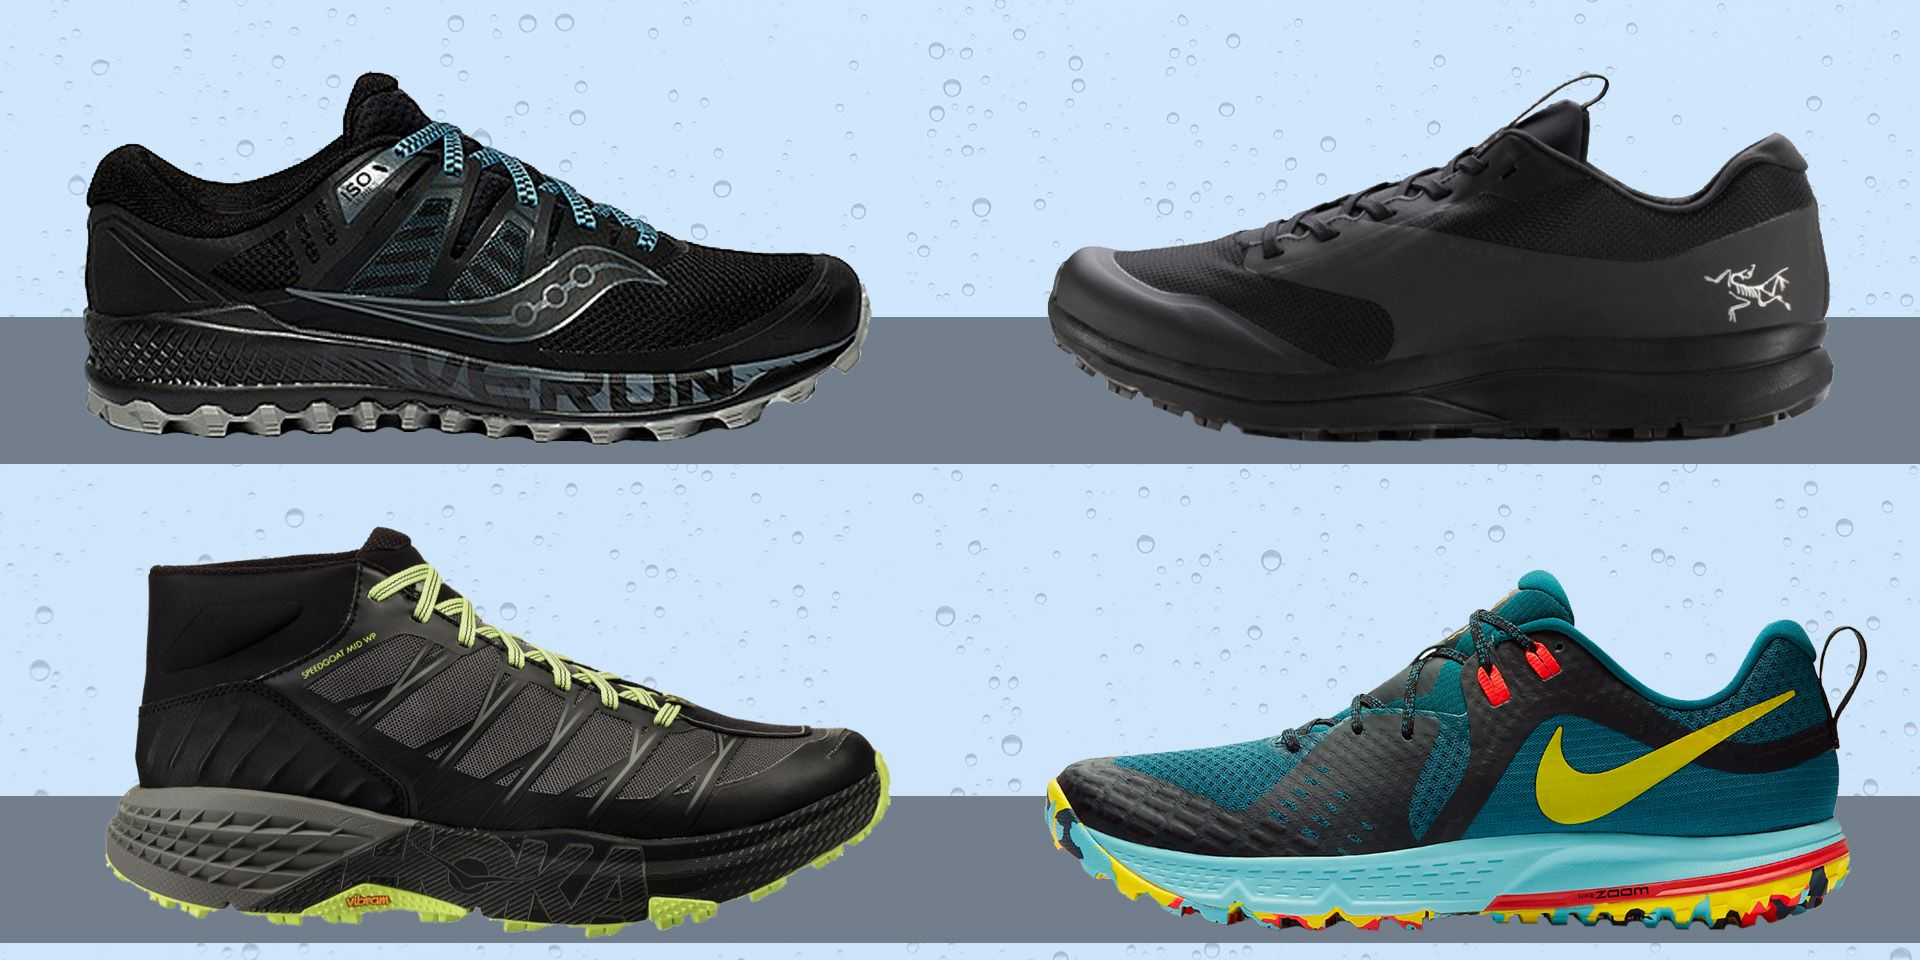 10 Best Waterproof Running Shoes 2019 For Fall, Winter and